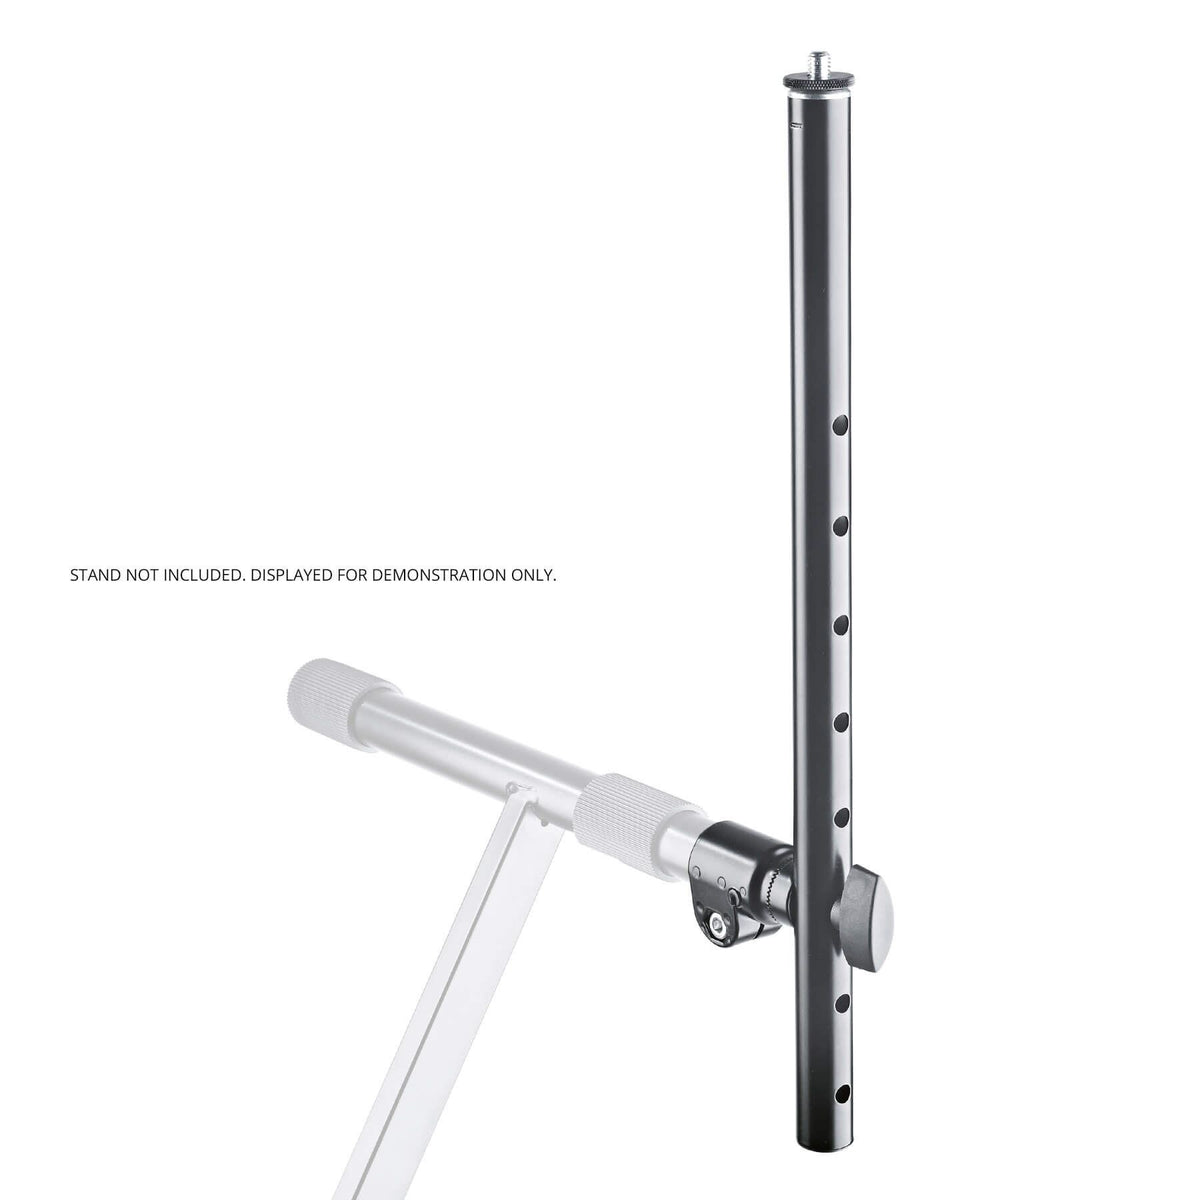 K&M 18944 Black 30mm Universal Holder for X-Keyboard Stands 18930 18940 18990 18995